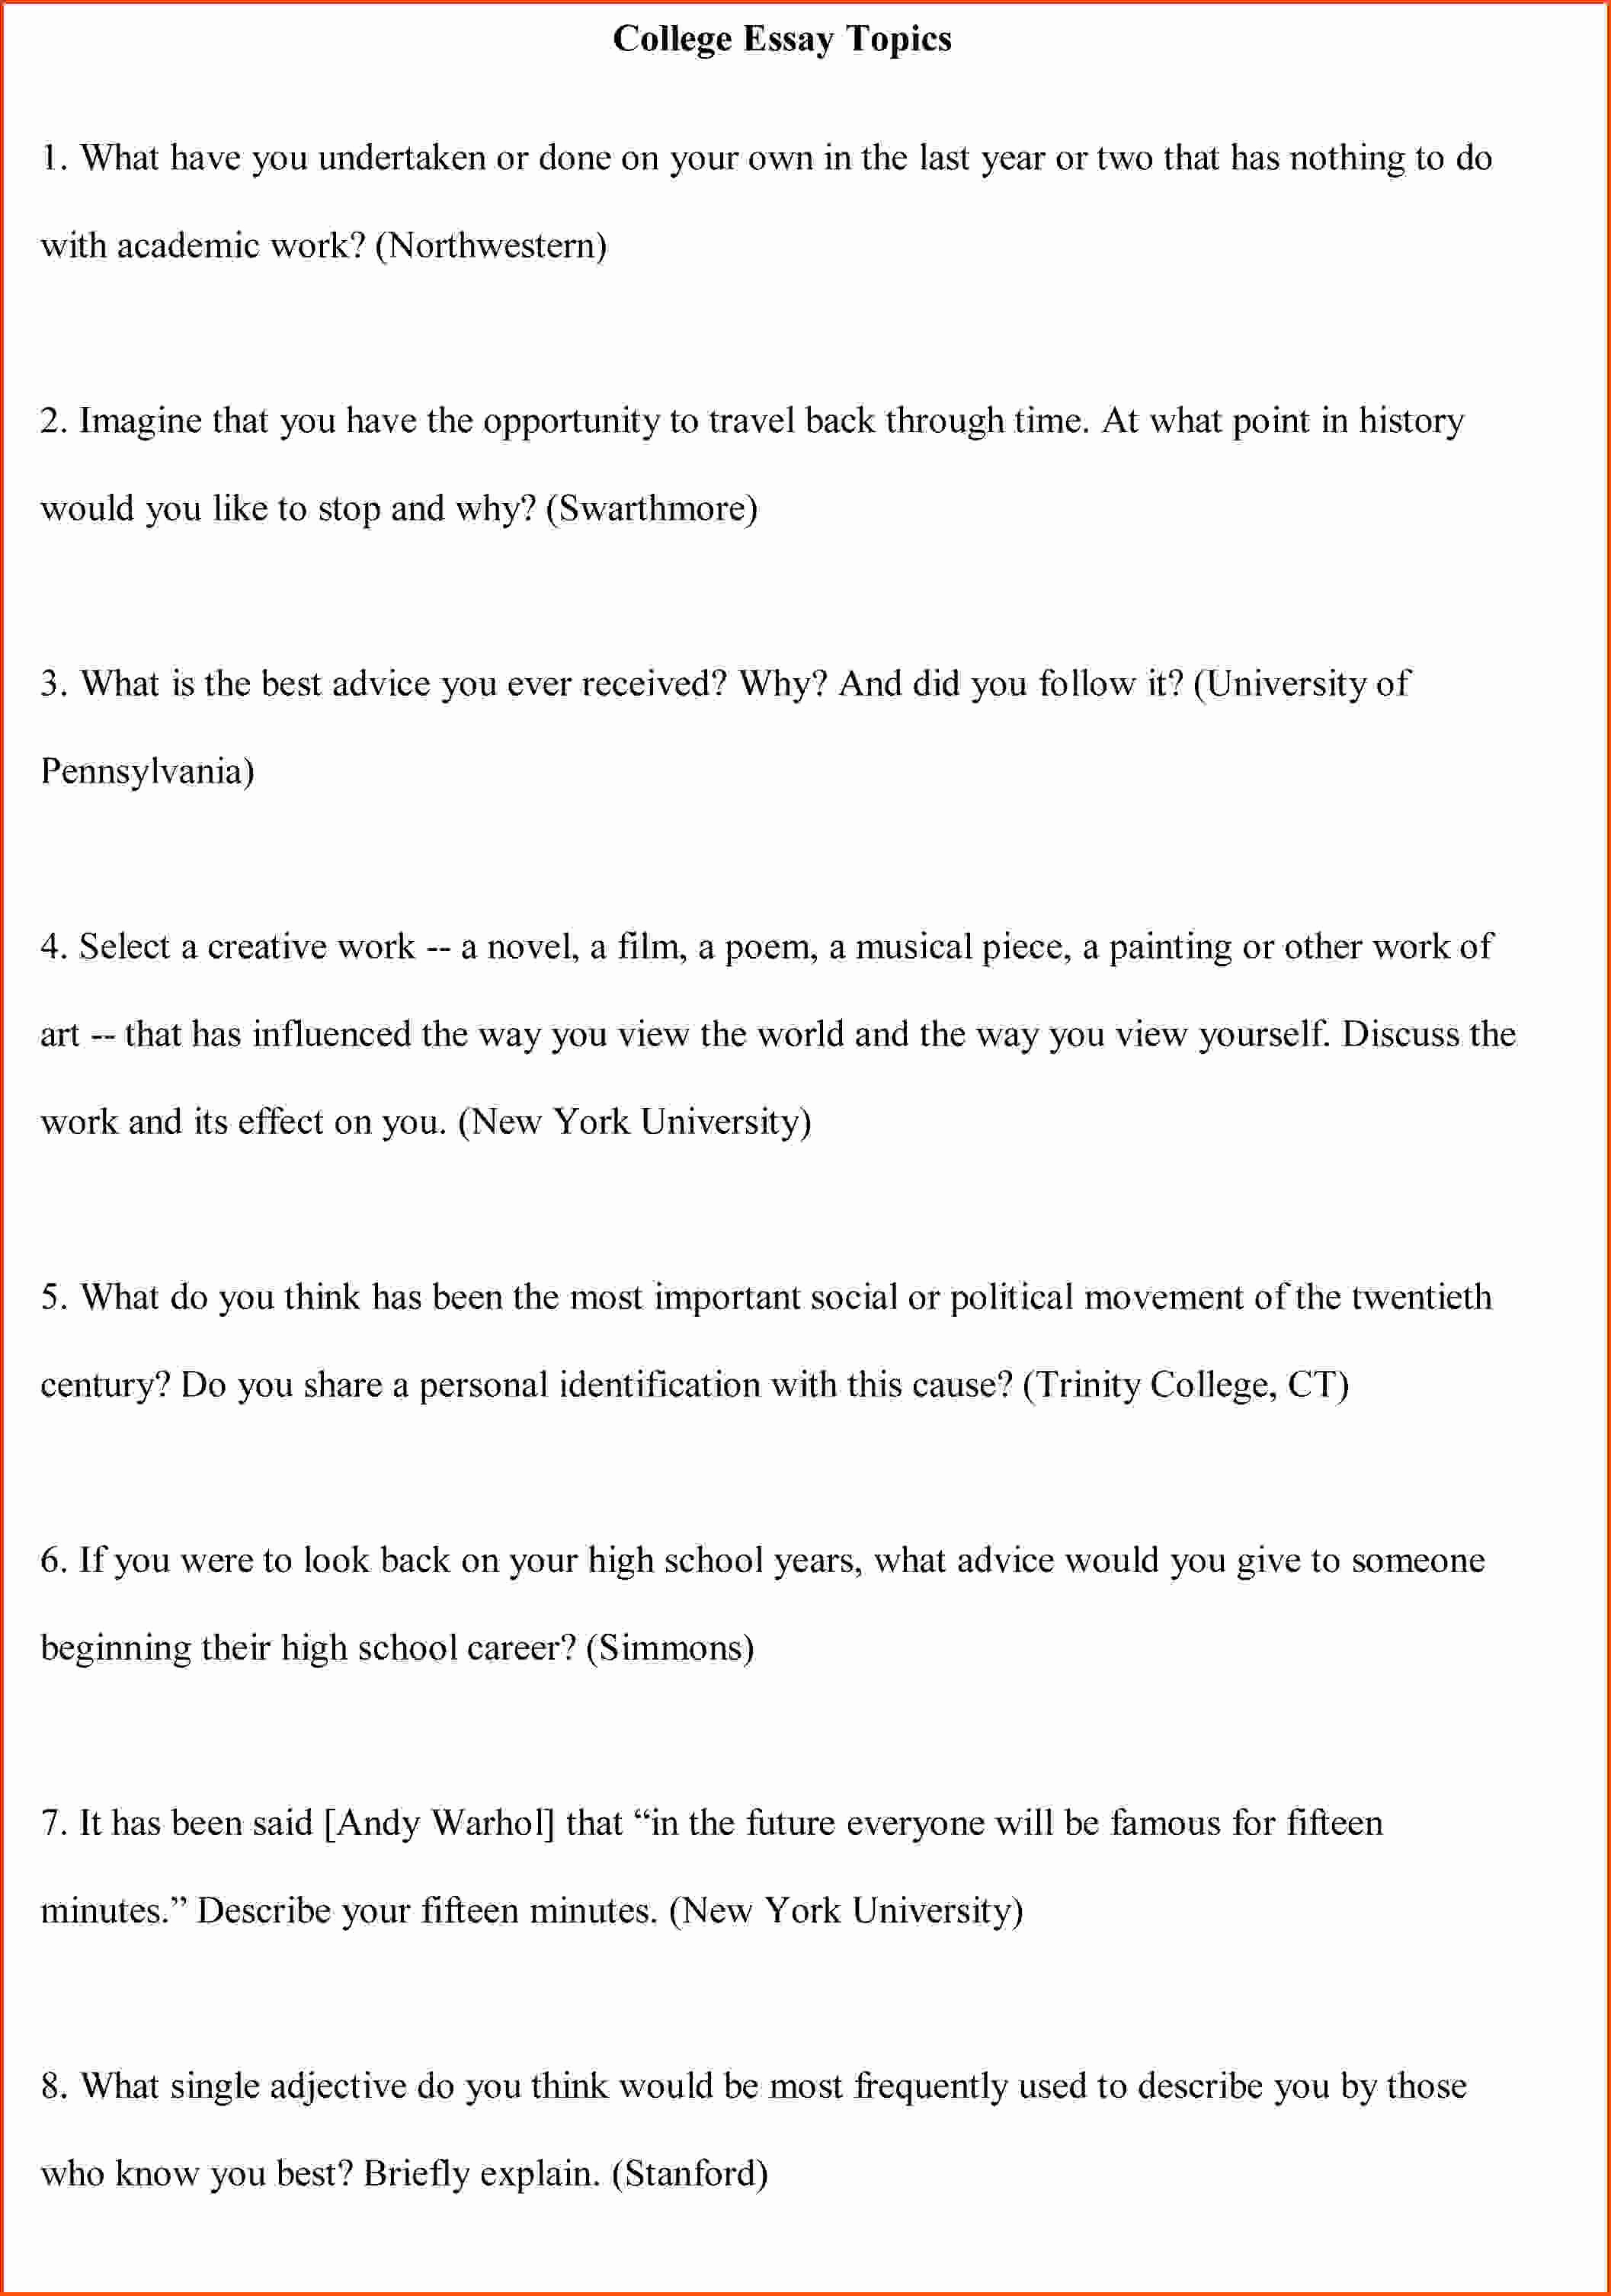 013 Best Essays Creative Nonfiction Essay Examples Resume Template And Cover Letter Response Example Writing S Eng Introduction Higher English Side College Exceptional 2017 Video 2018 Of All Time Reddit Full